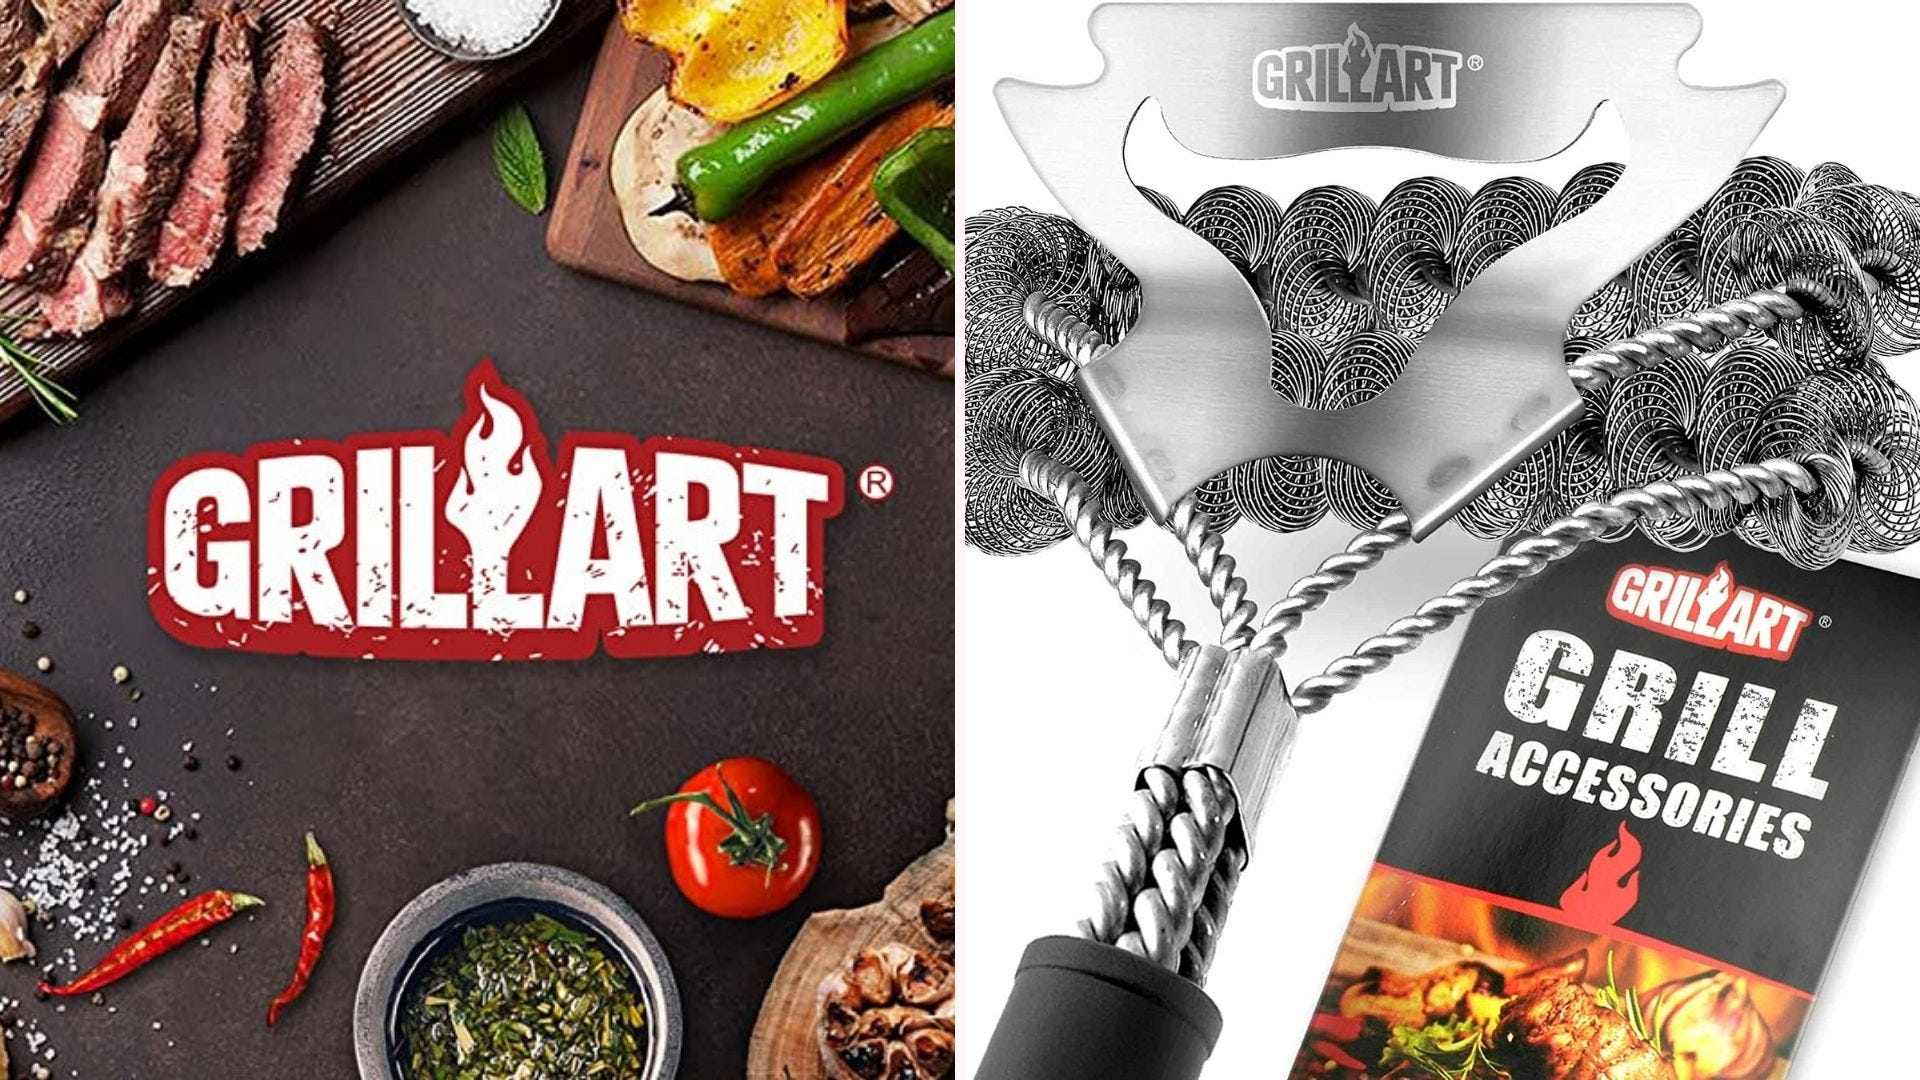 Two side by side images: the left image is of the Grillart logo surrounded by different grilling ingredients and the right image is of a Grillart bristle-free cleaning brush near a pamphlet.